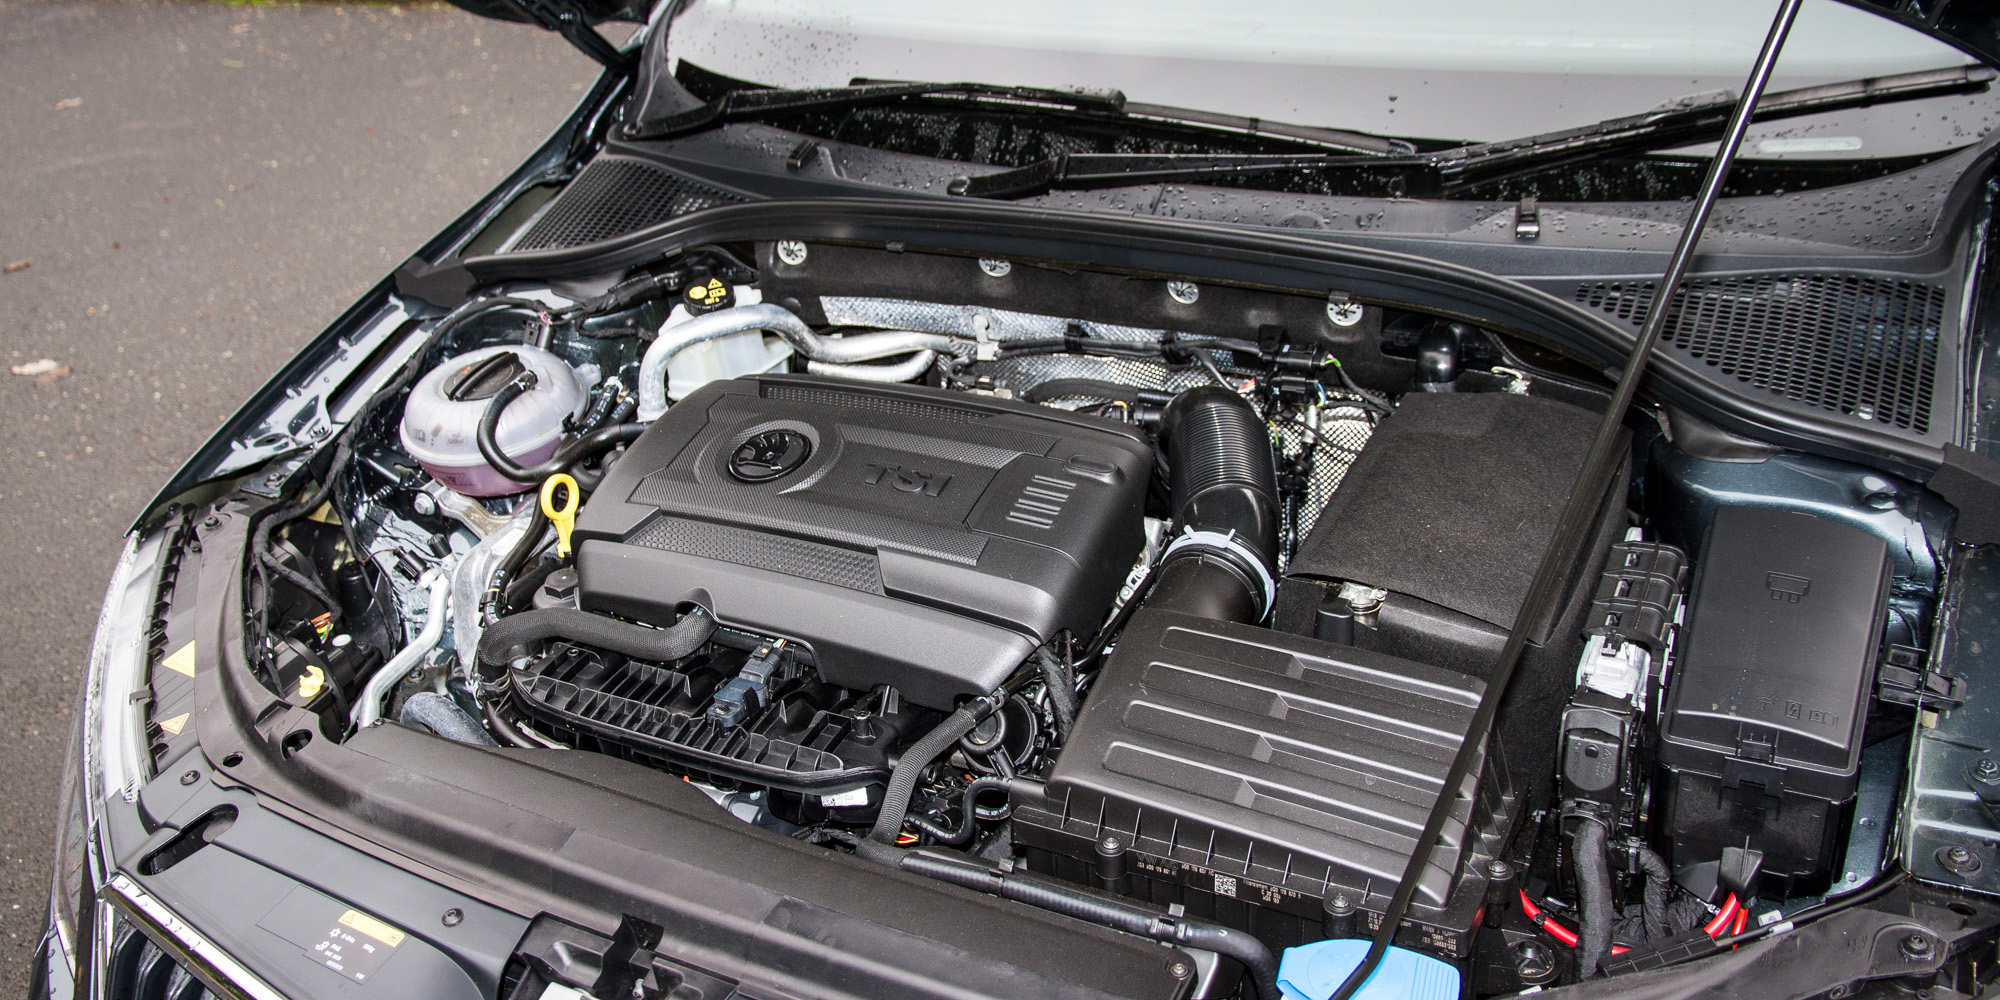 2016 Skoda Octavia Scout Engine (Photo 2 of 23)